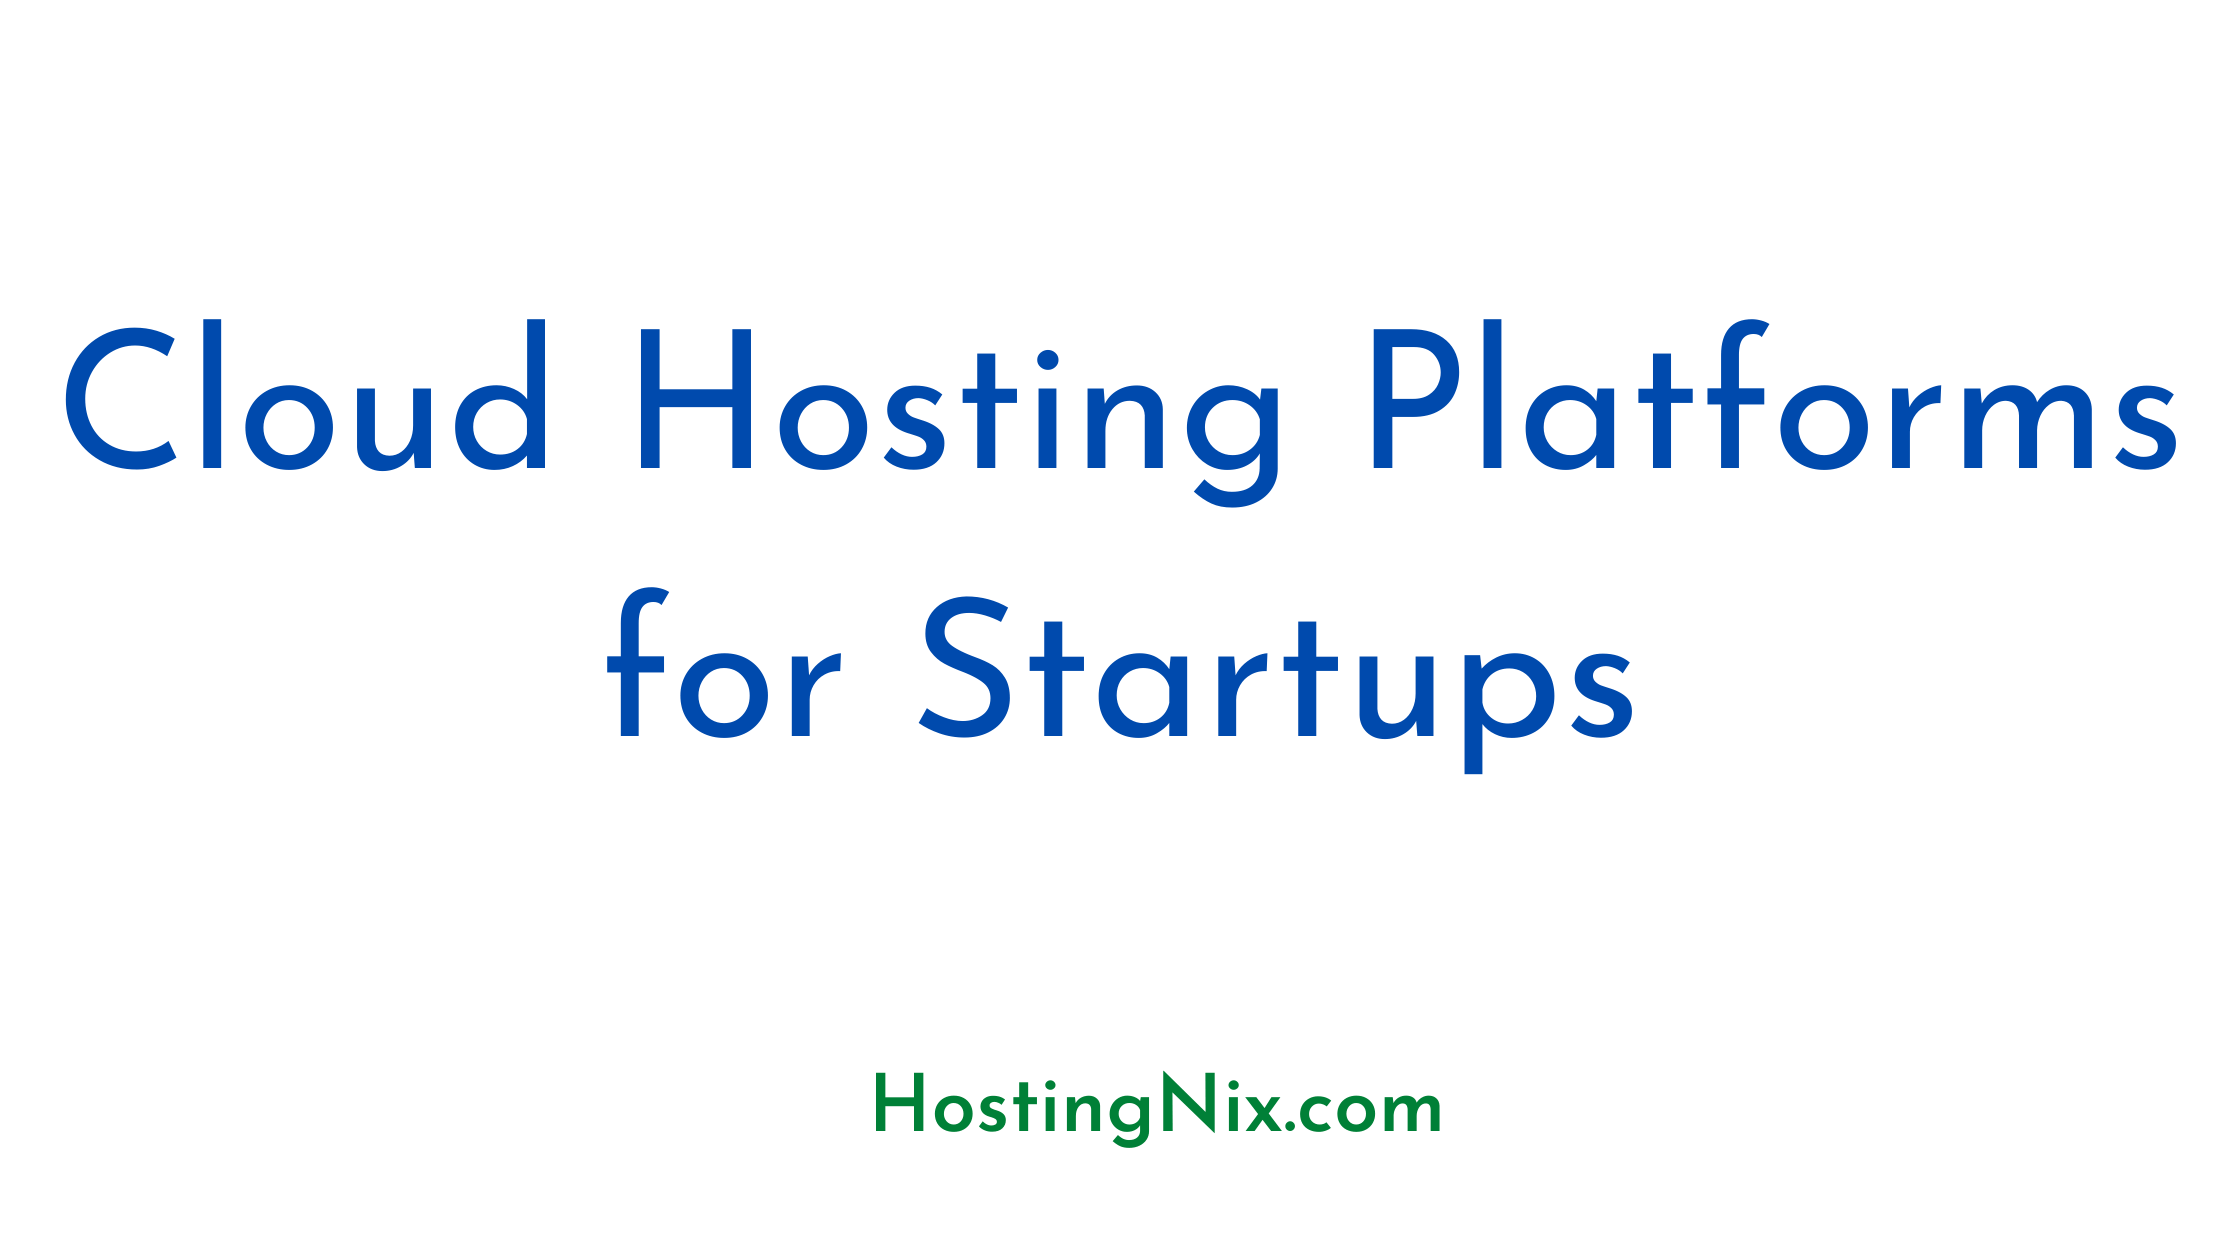 Cloud Hosting Platforms for startups